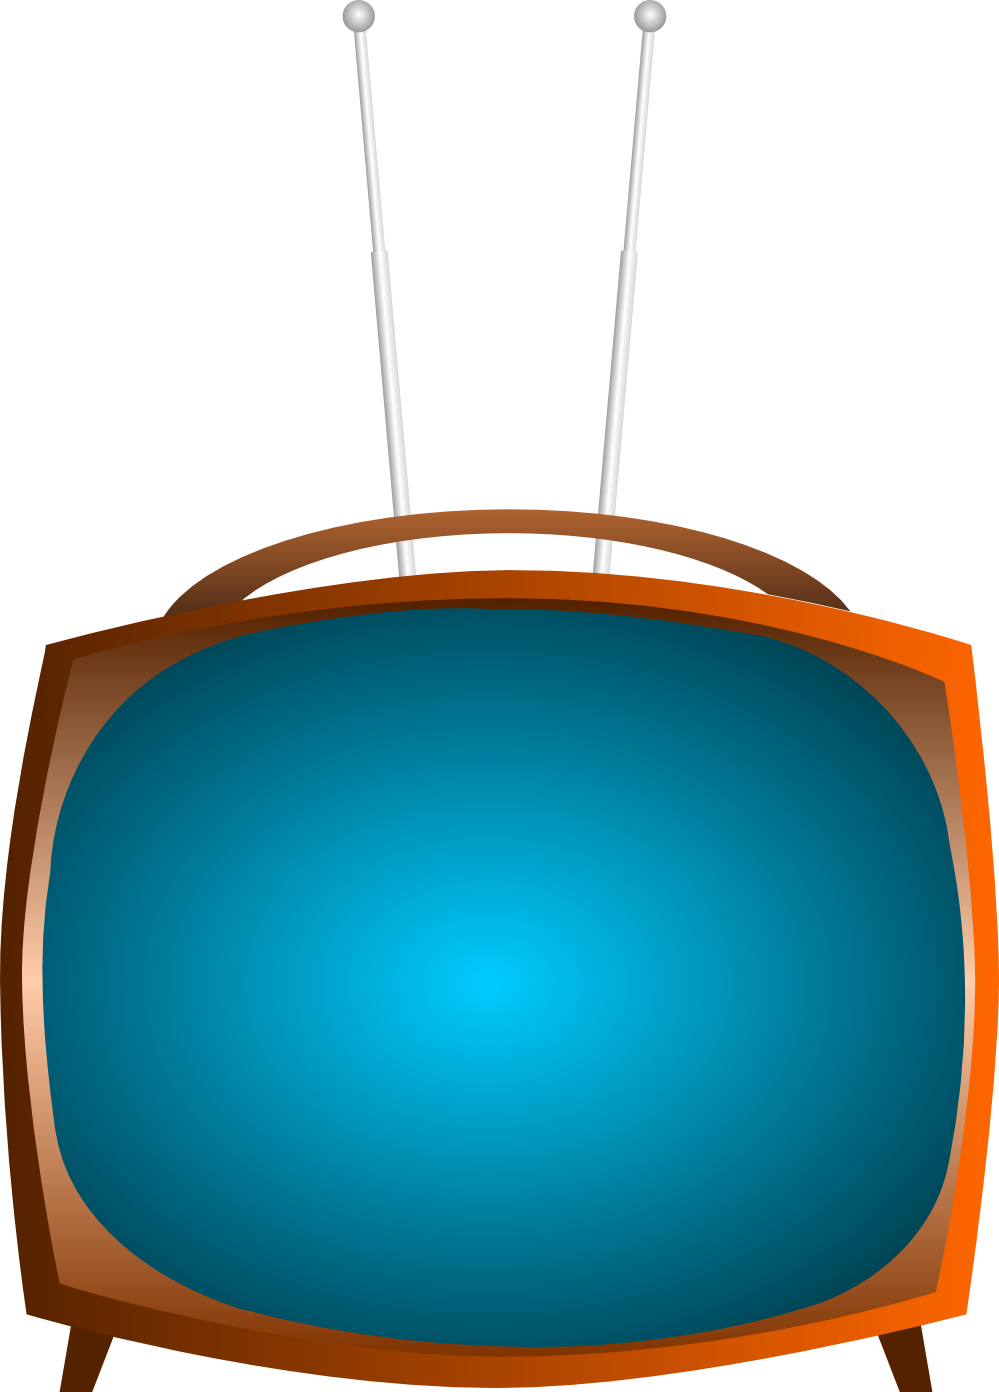 Old Television Clipart - Clipart Kid